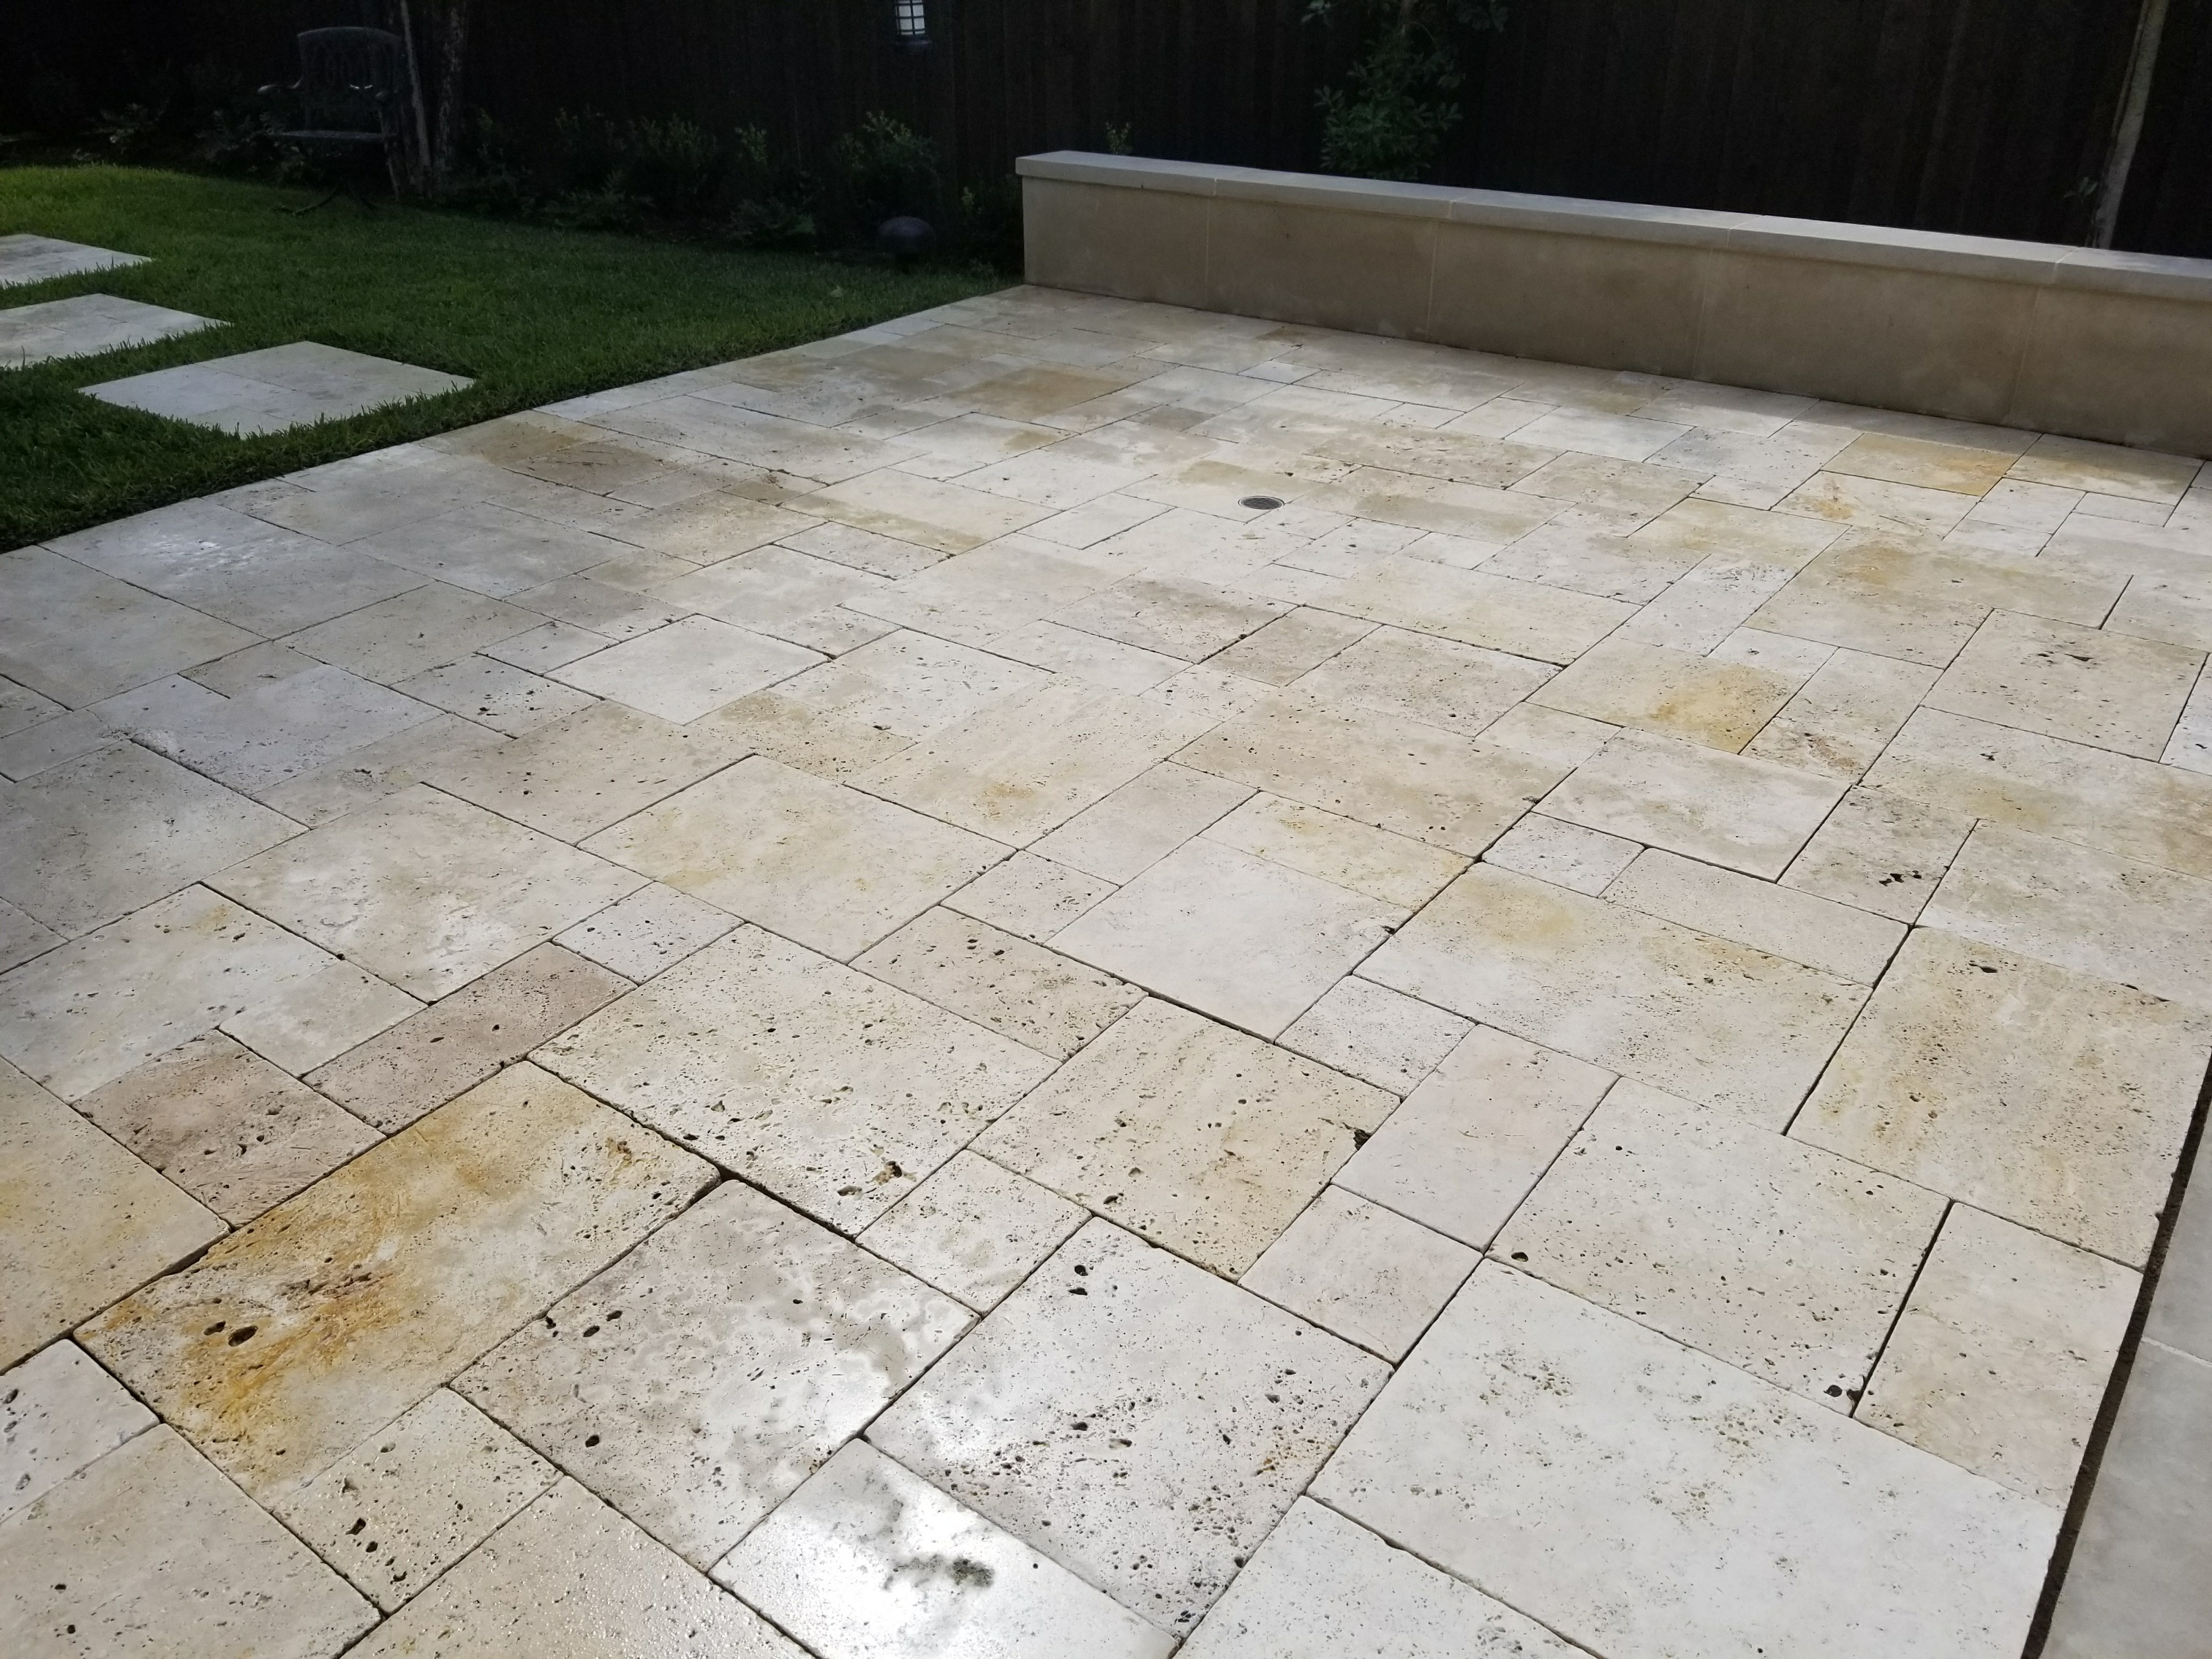 Travertine Pool Deck Sealer Cleaning Outdoor Travertine Patio Dallas  Travertine & Marble